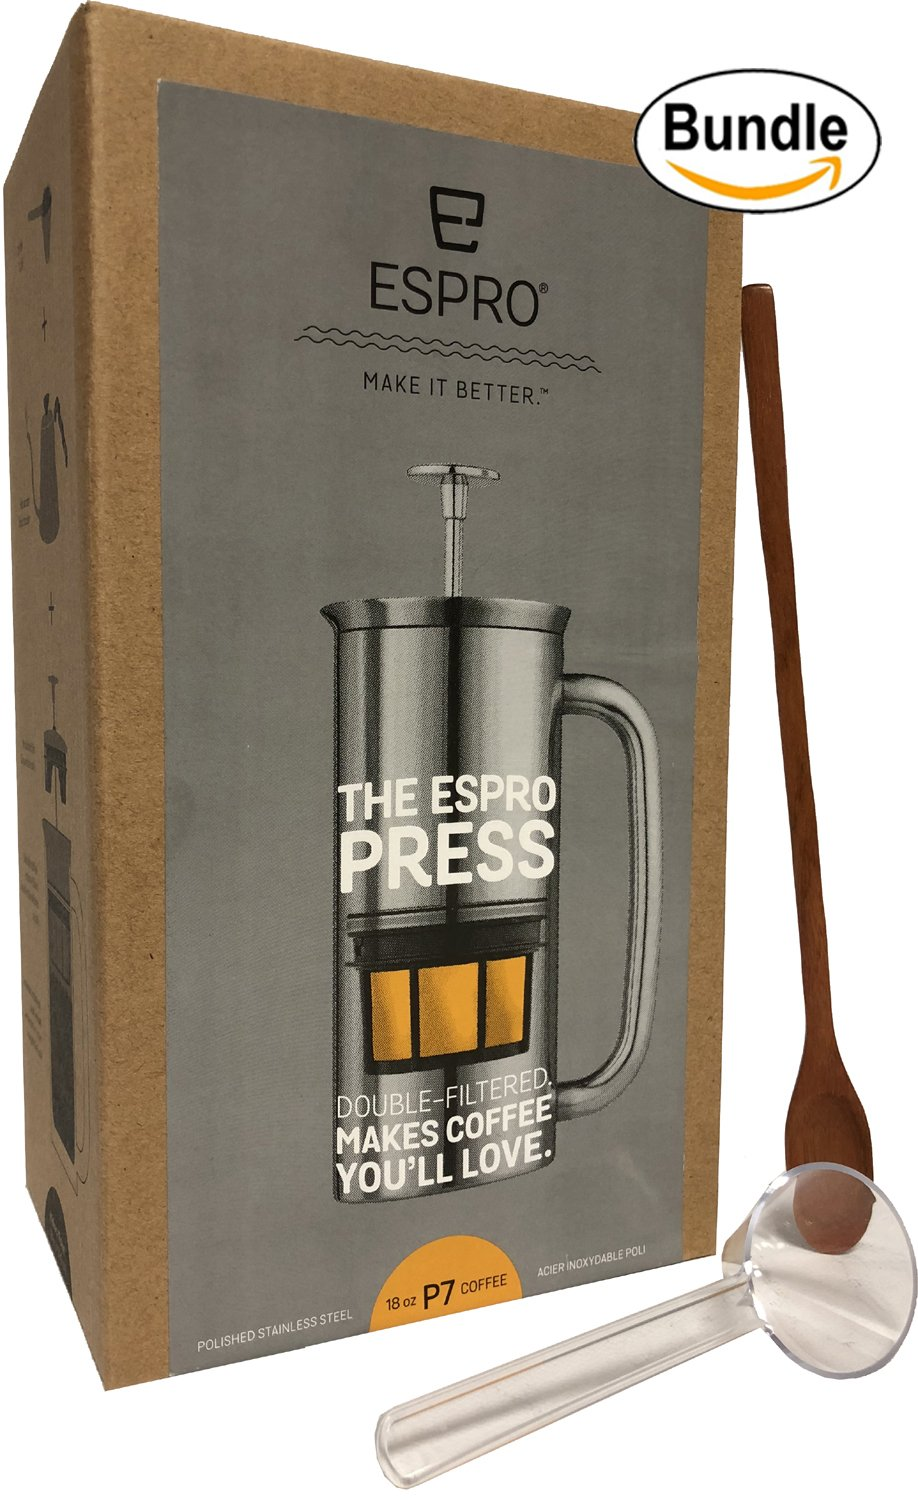 Espro Coffee Press P7-18 oz Double Wall Vacuum Insulated Polished Stainless Steel Coffee Press, Zonoz One-Tablespoon Plastic Clever Scoop & Zonoz 8.25-Inch Wooden Stirring Spoon Bundle by Espro (Image #4)